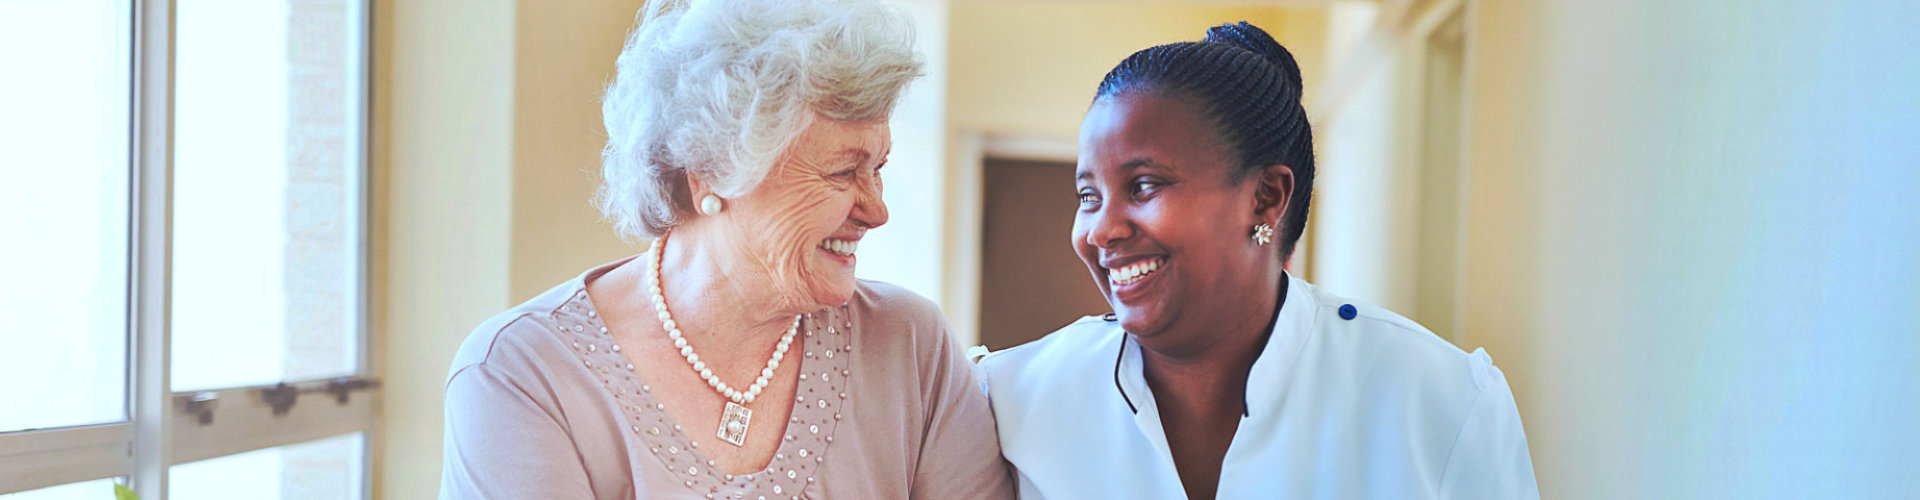 smiling home caregiver and senior woman